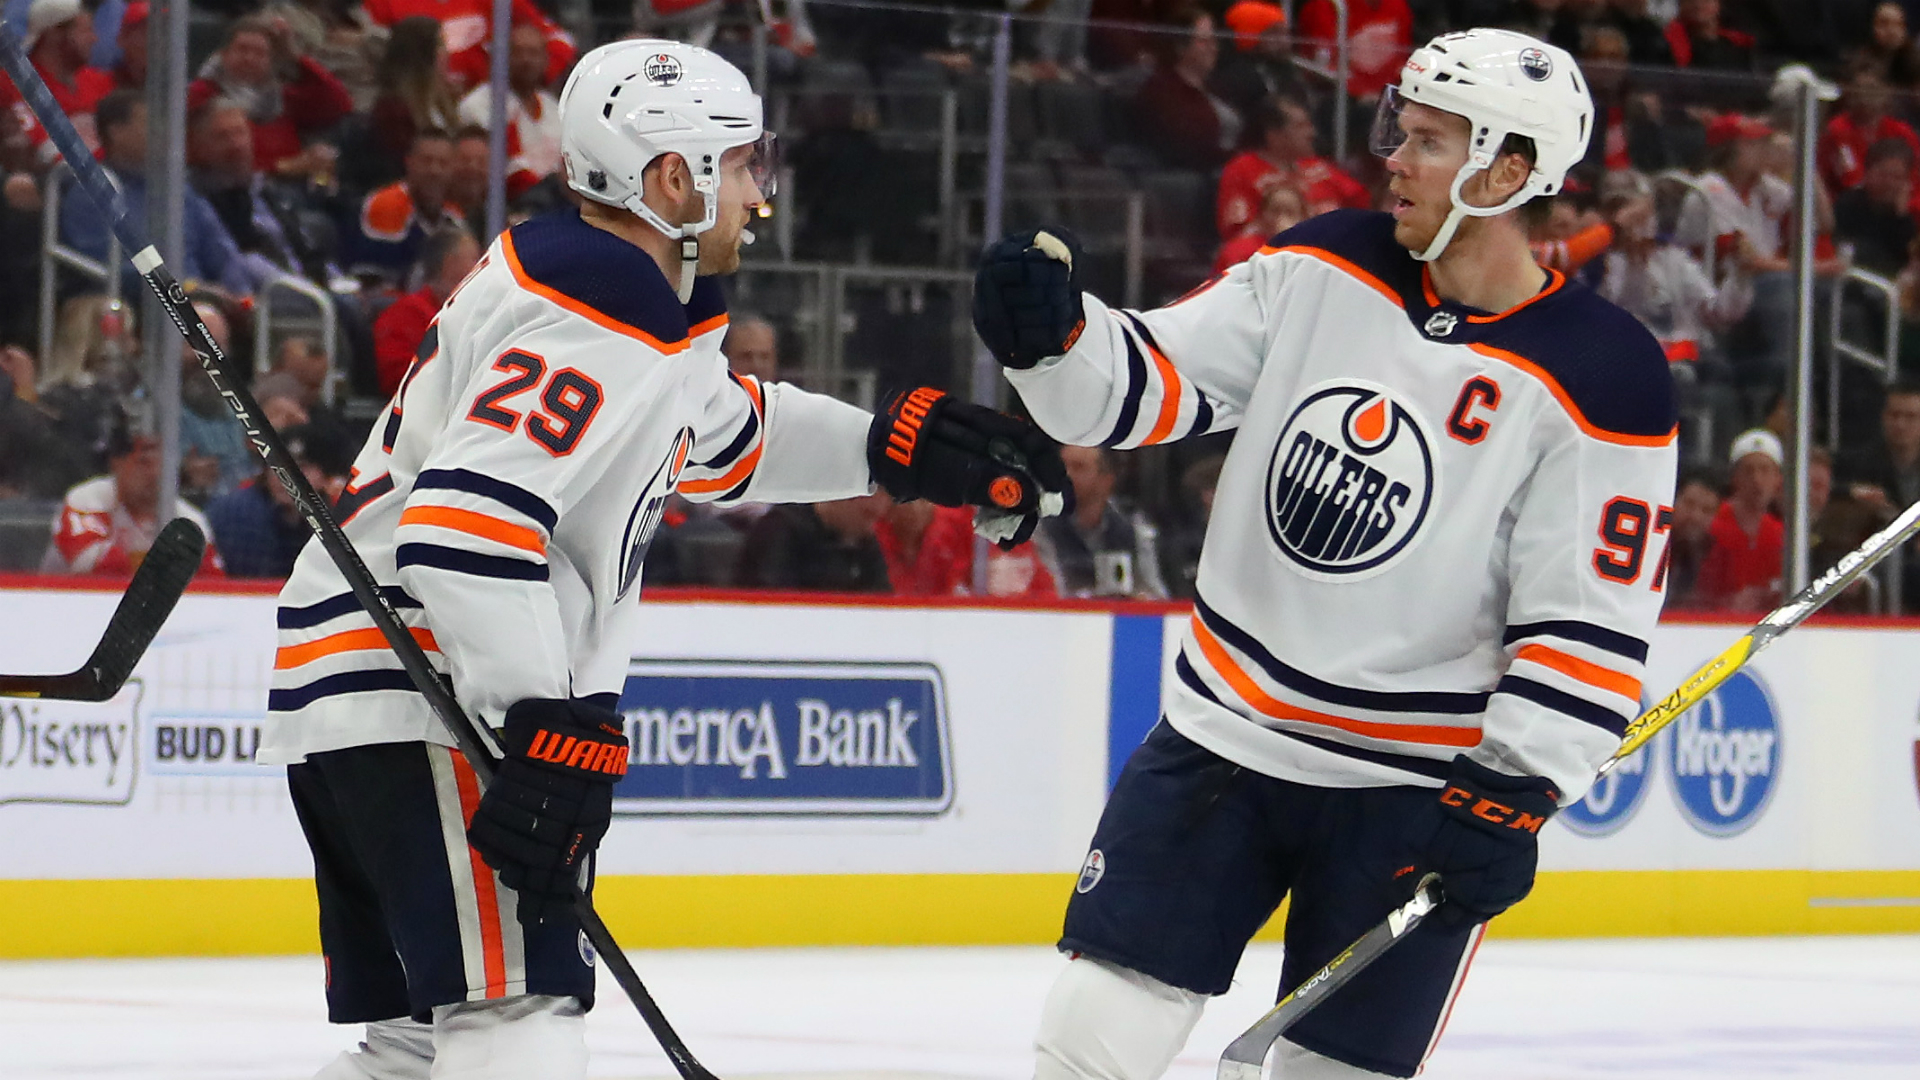 Edmonton Oilers' Leon Draisaitl, Connor McDavid just cannot stop scoring